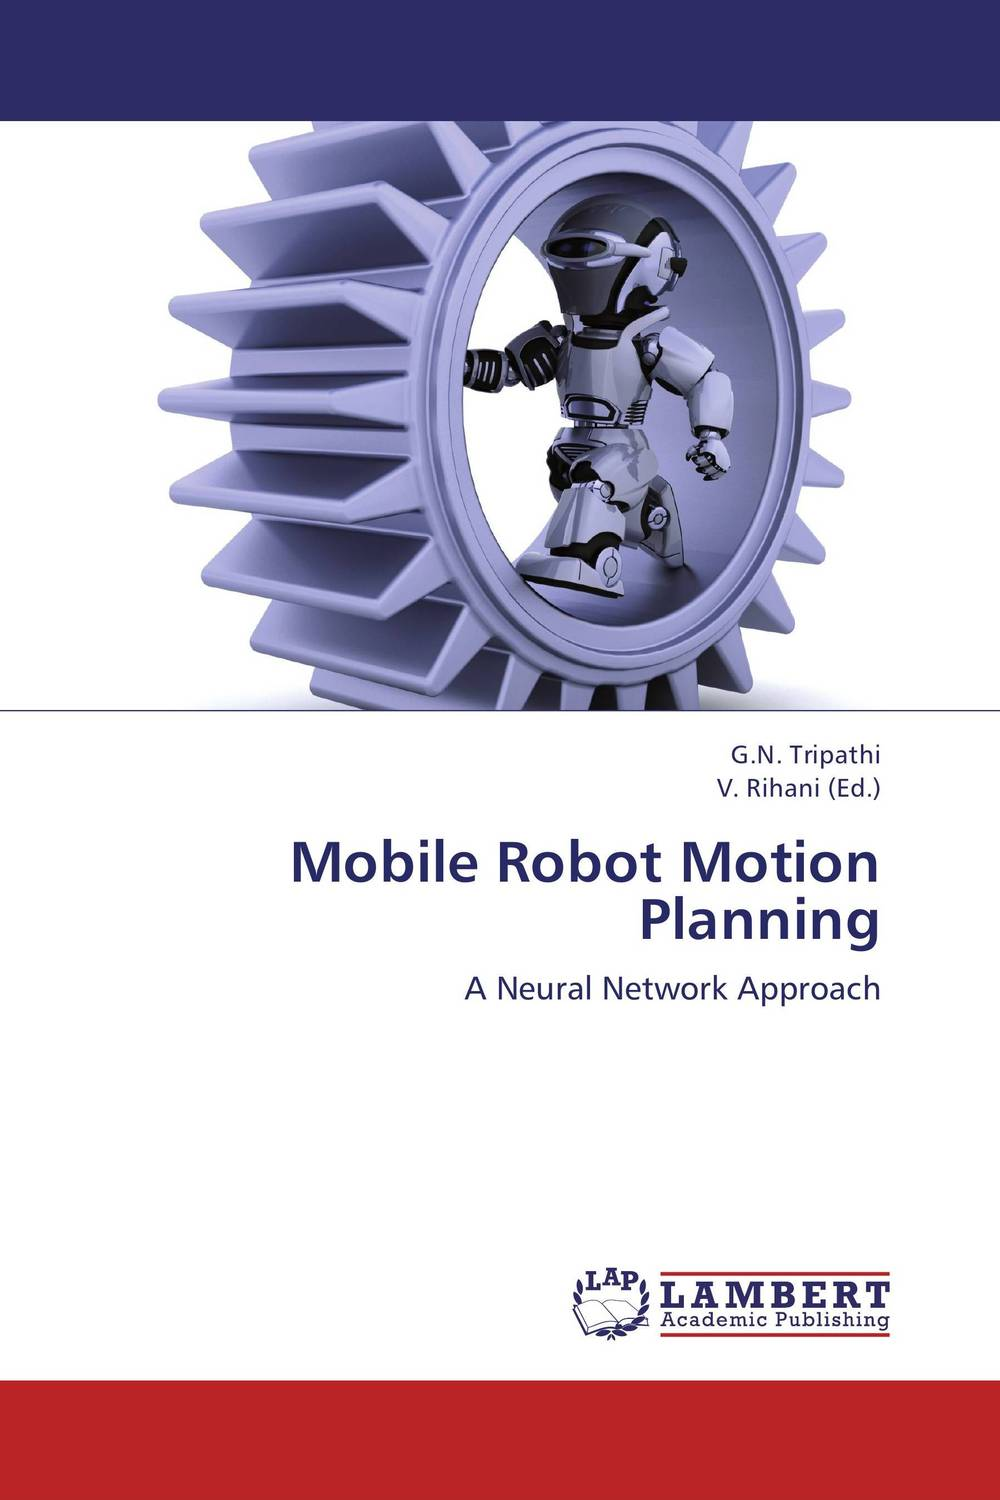 Mobile Robot Motion Planning planning and evaluates performance of radio network